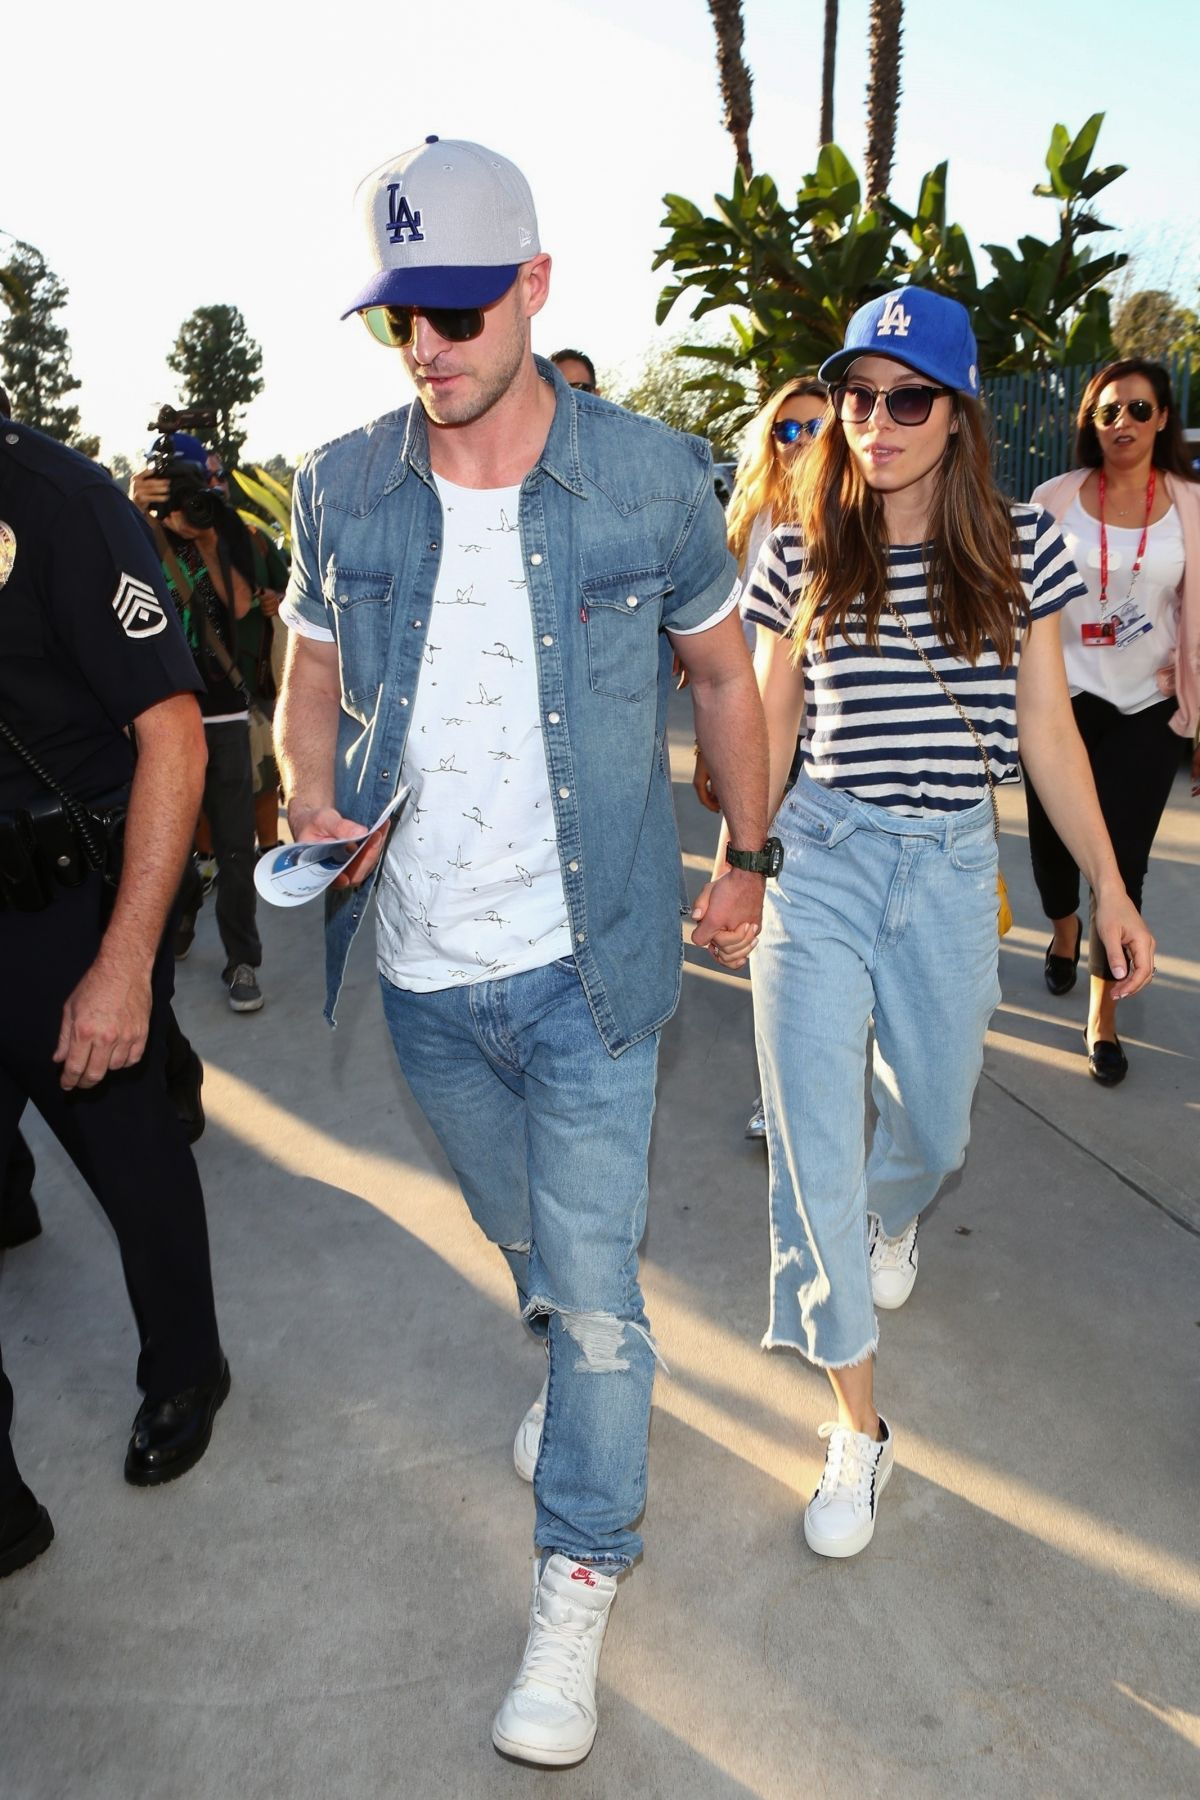 Justin Timberlake & Jessica Biel Arrive for Astros vs. Dodgers World Series Game 2 at Dodgers Stadium in Los Angeles